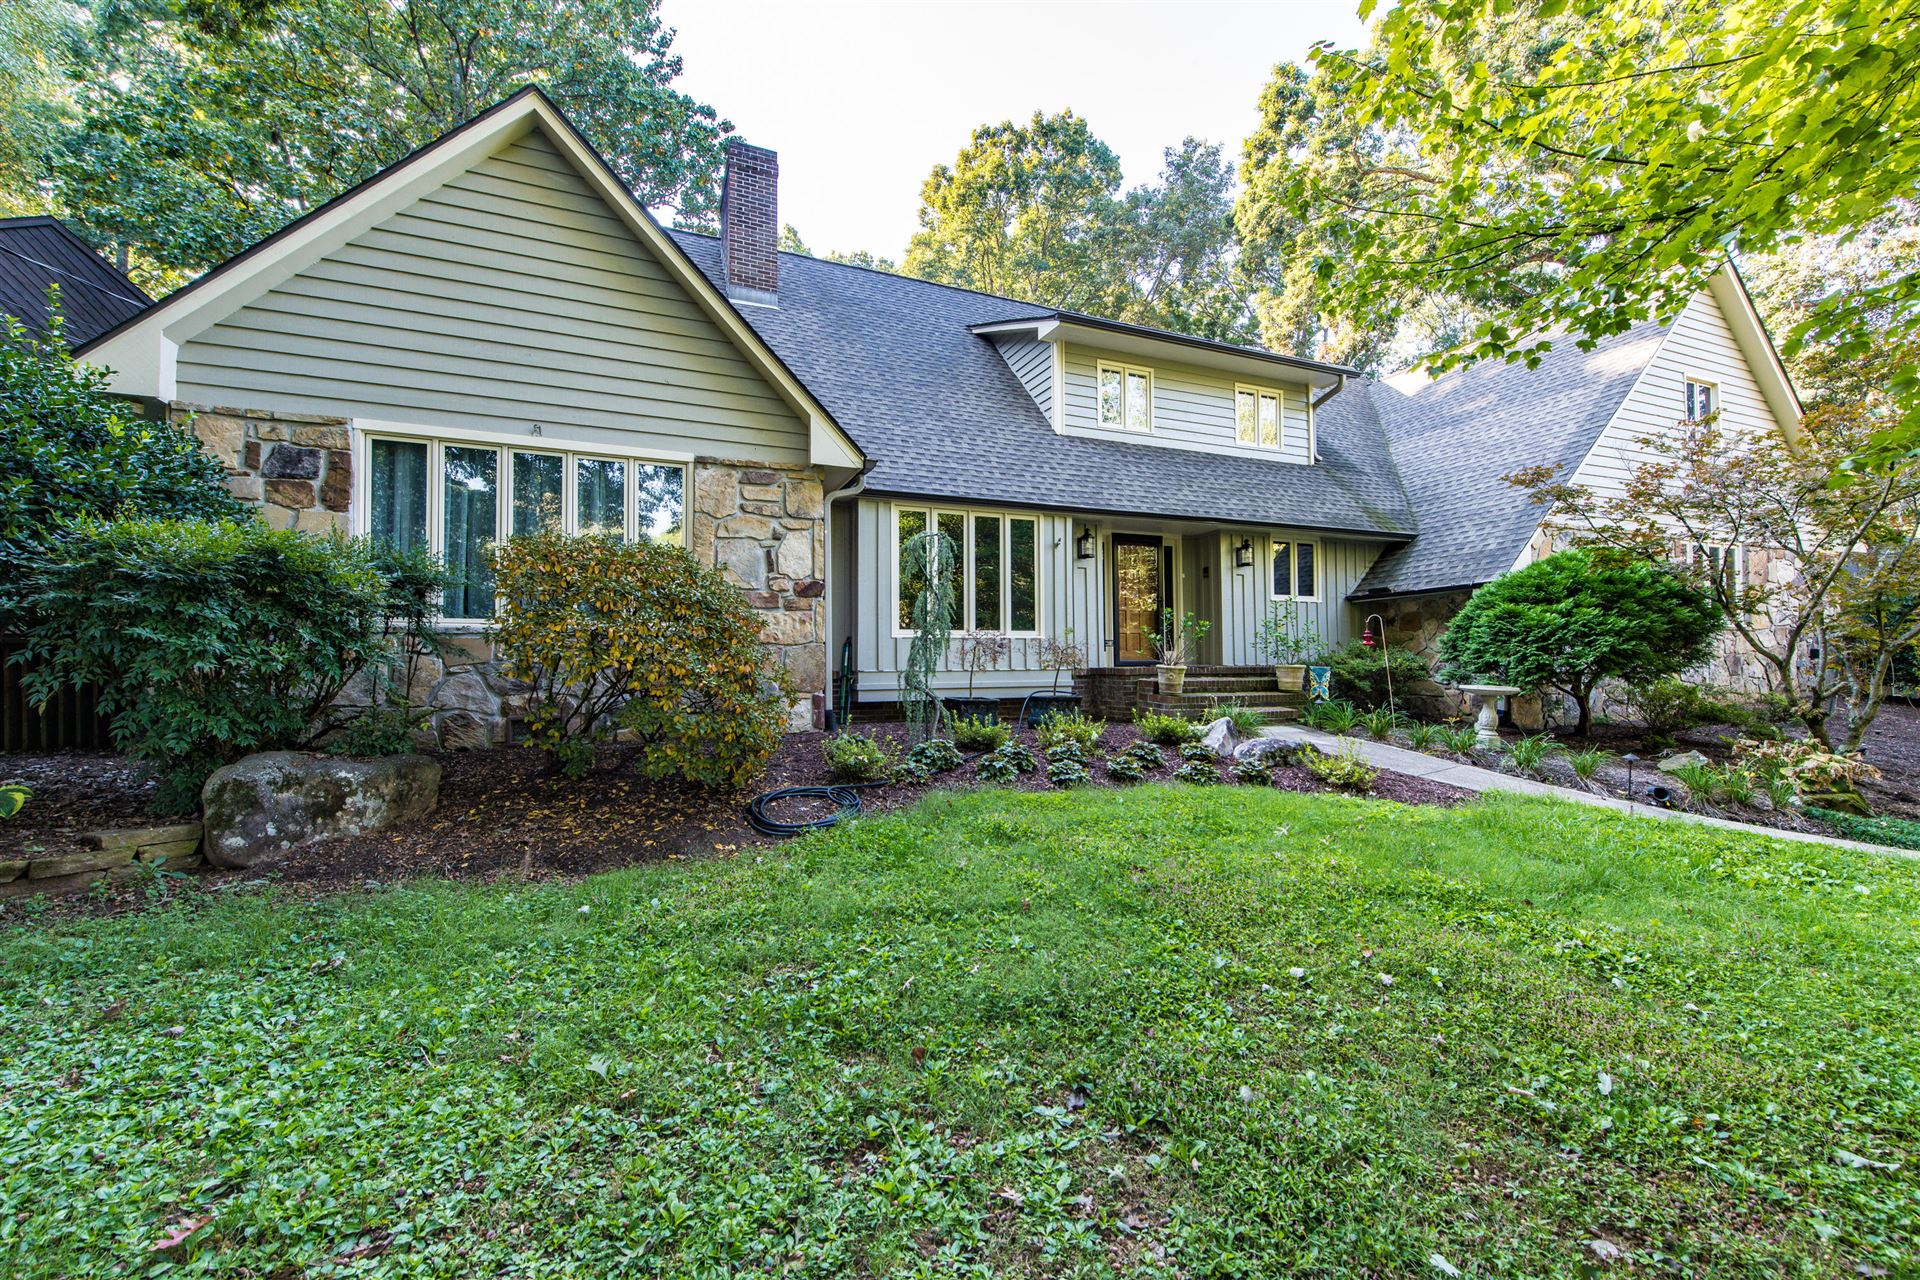 Photo of 8602 Dunaire Drive, Knoxville, TN 37923 (MLS # 1140161)